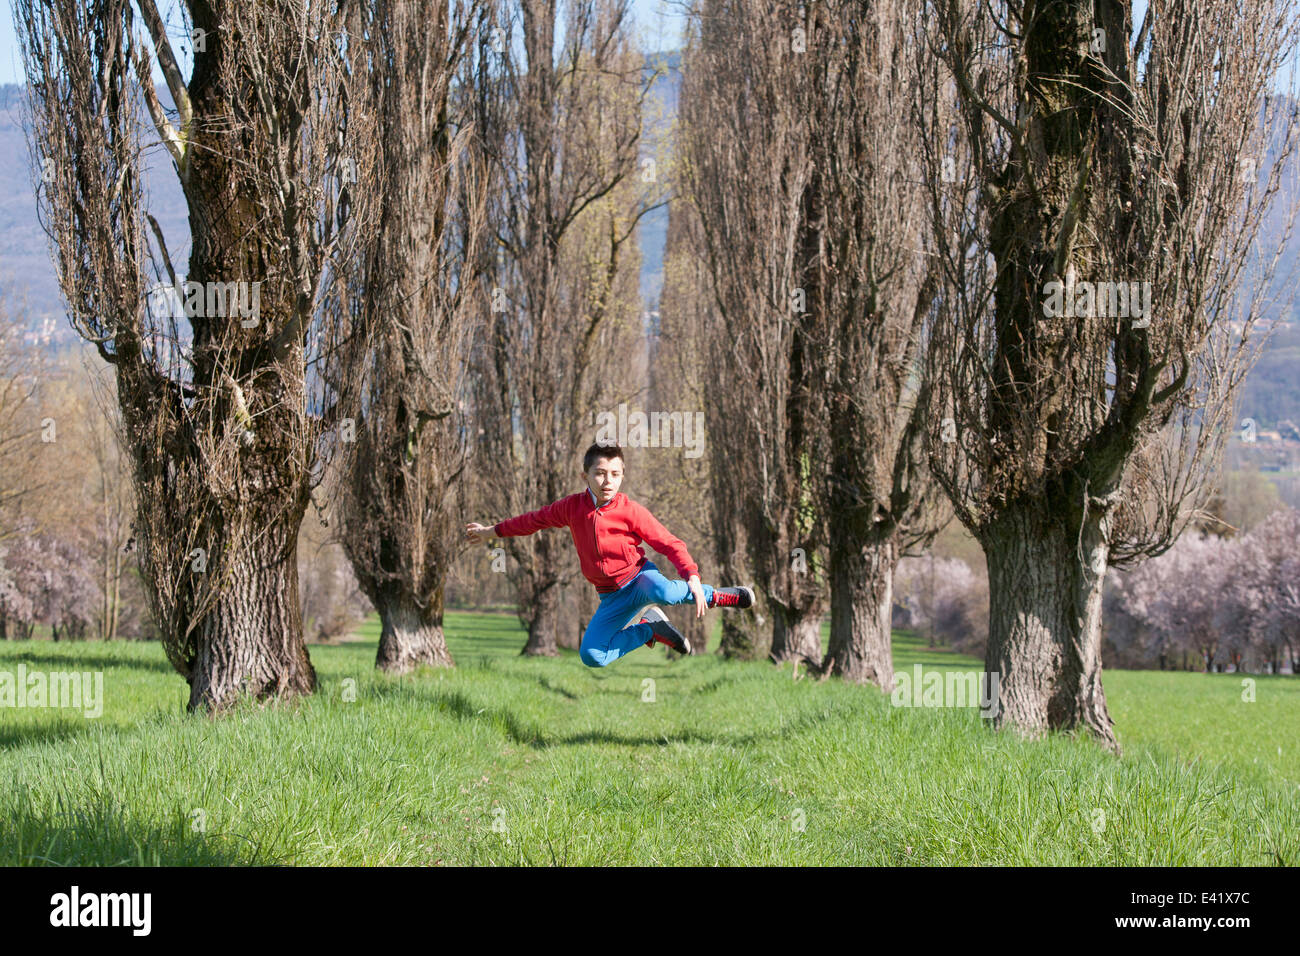 Twelve year old boy jumping mid air in tree lined field - Stock Image